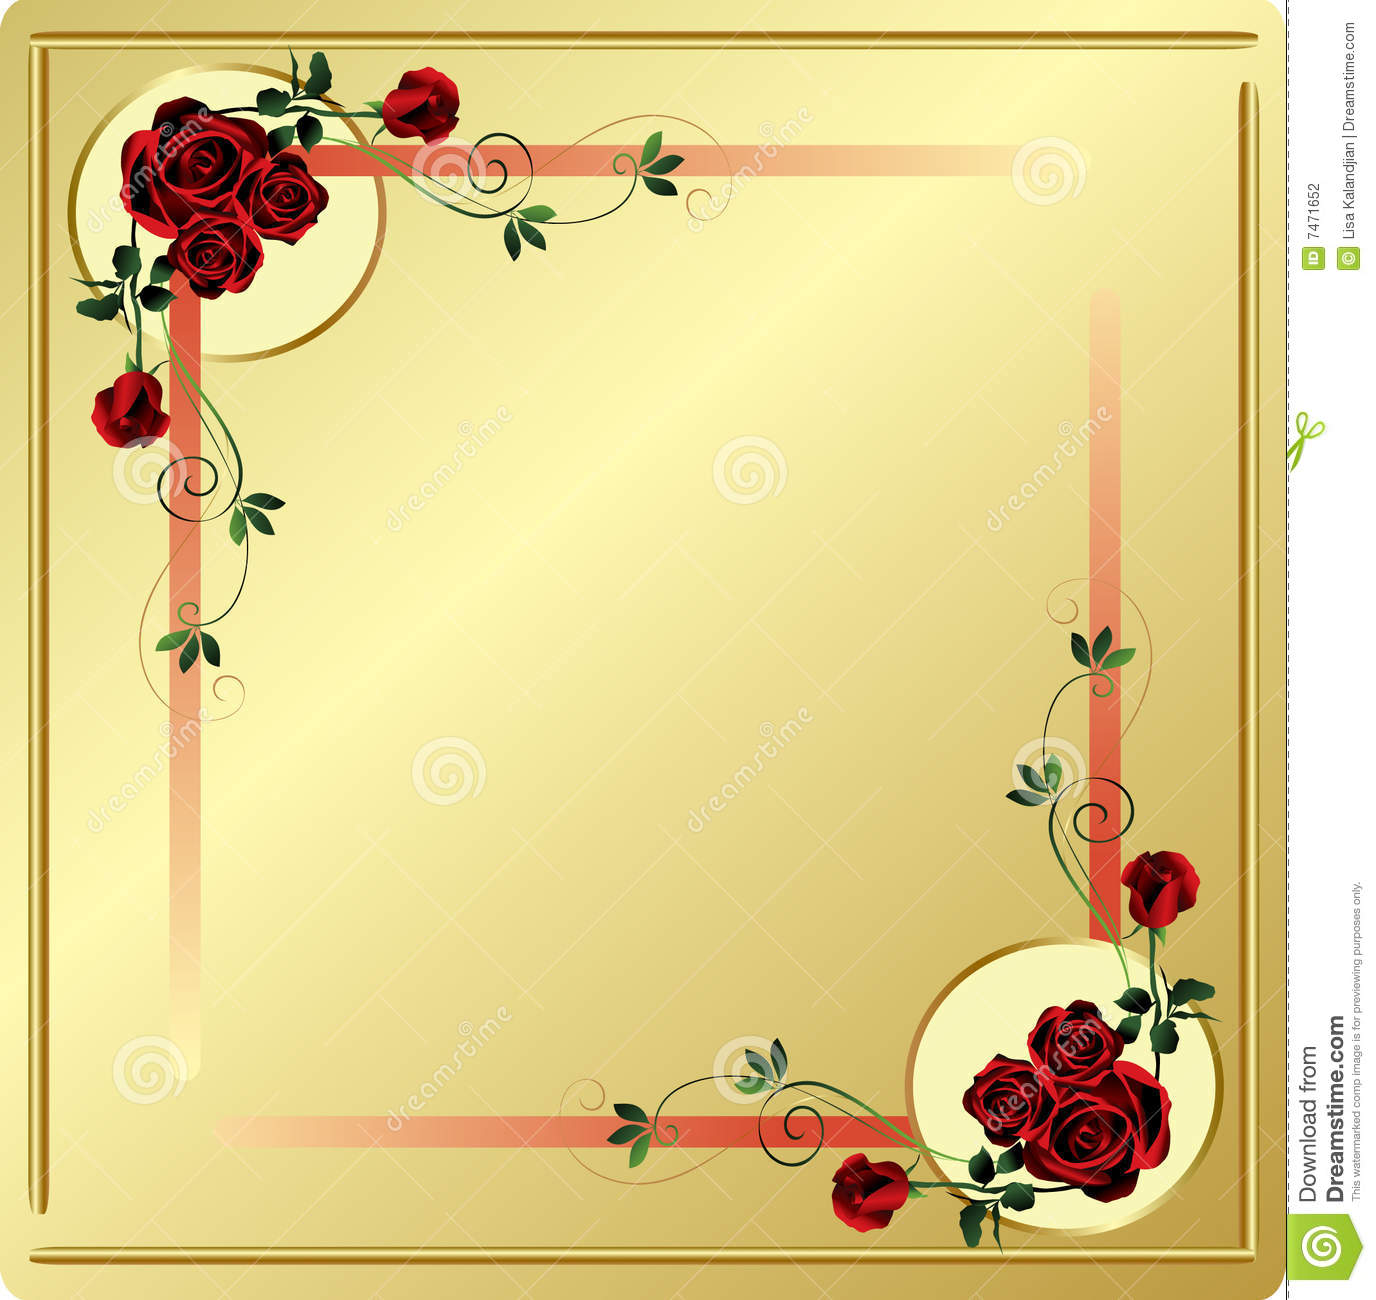 Background For Web Or Print In Gold With Elaborate Detailed Red Roses